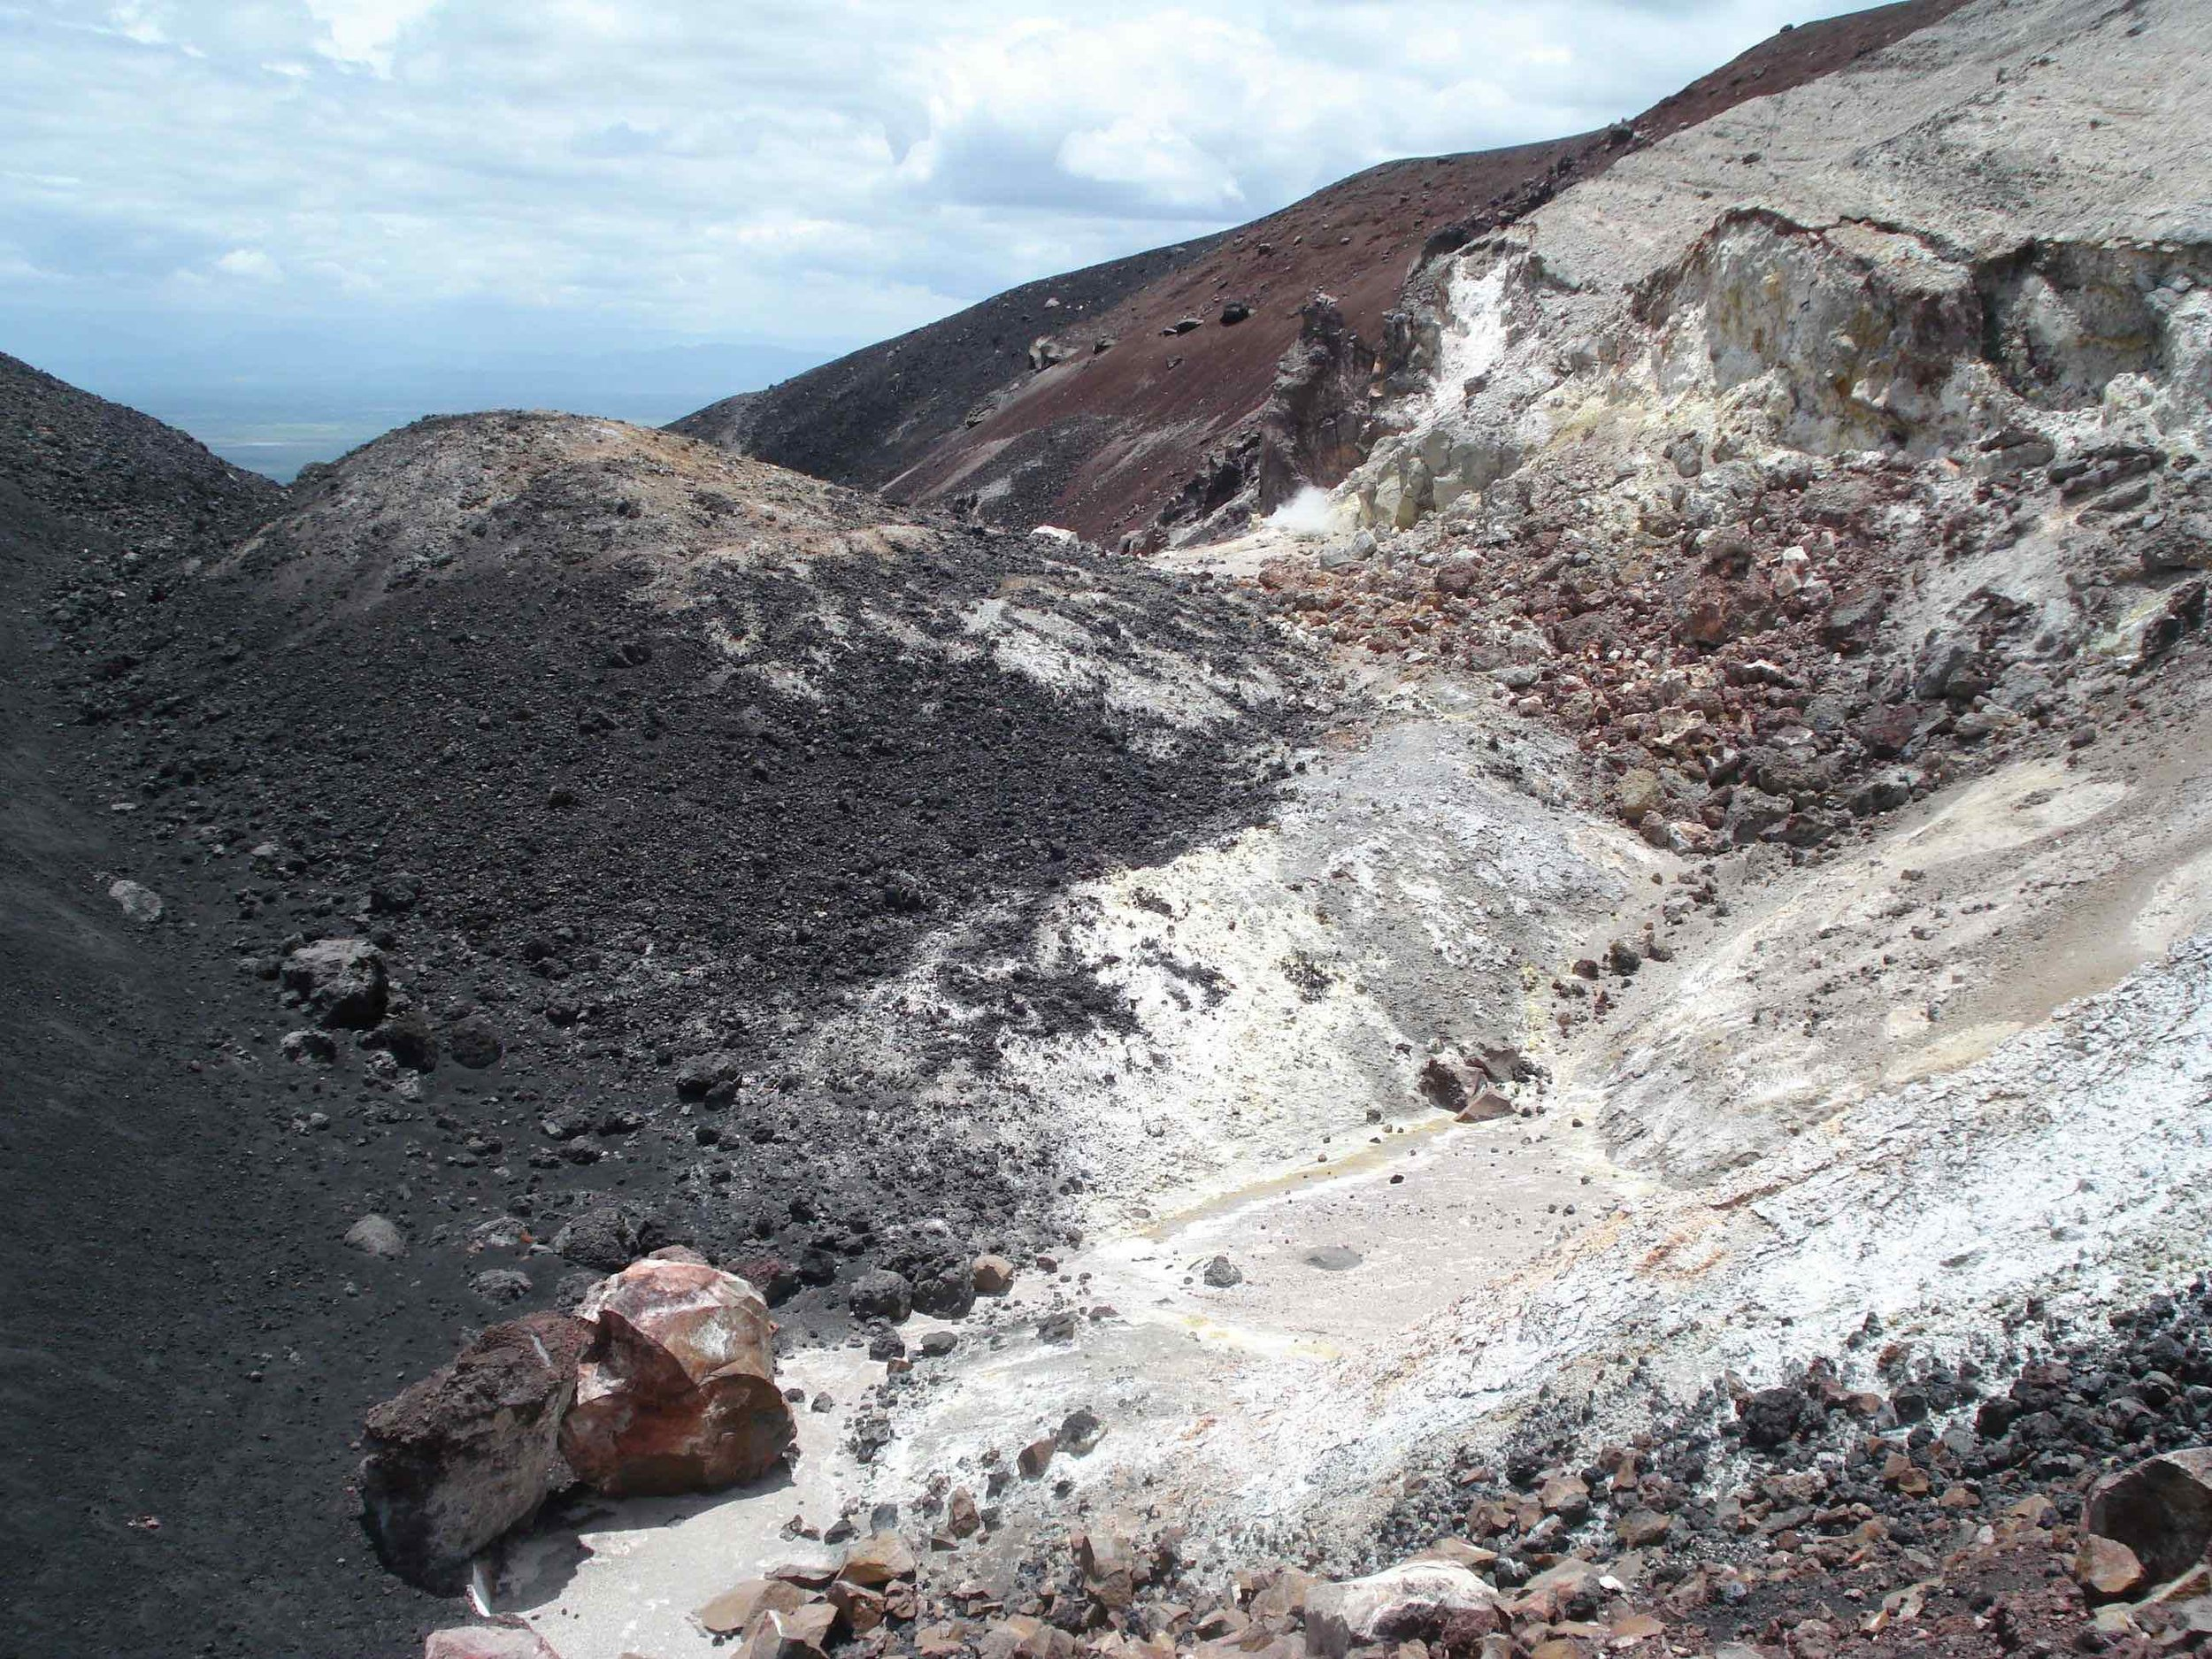 To the left is the fresh black basalt of the current cone. The light area on the right is the highly weathered inside flank of an older eruption cone. The flat middle area (pinkish) is an outwash basin or drainage area.